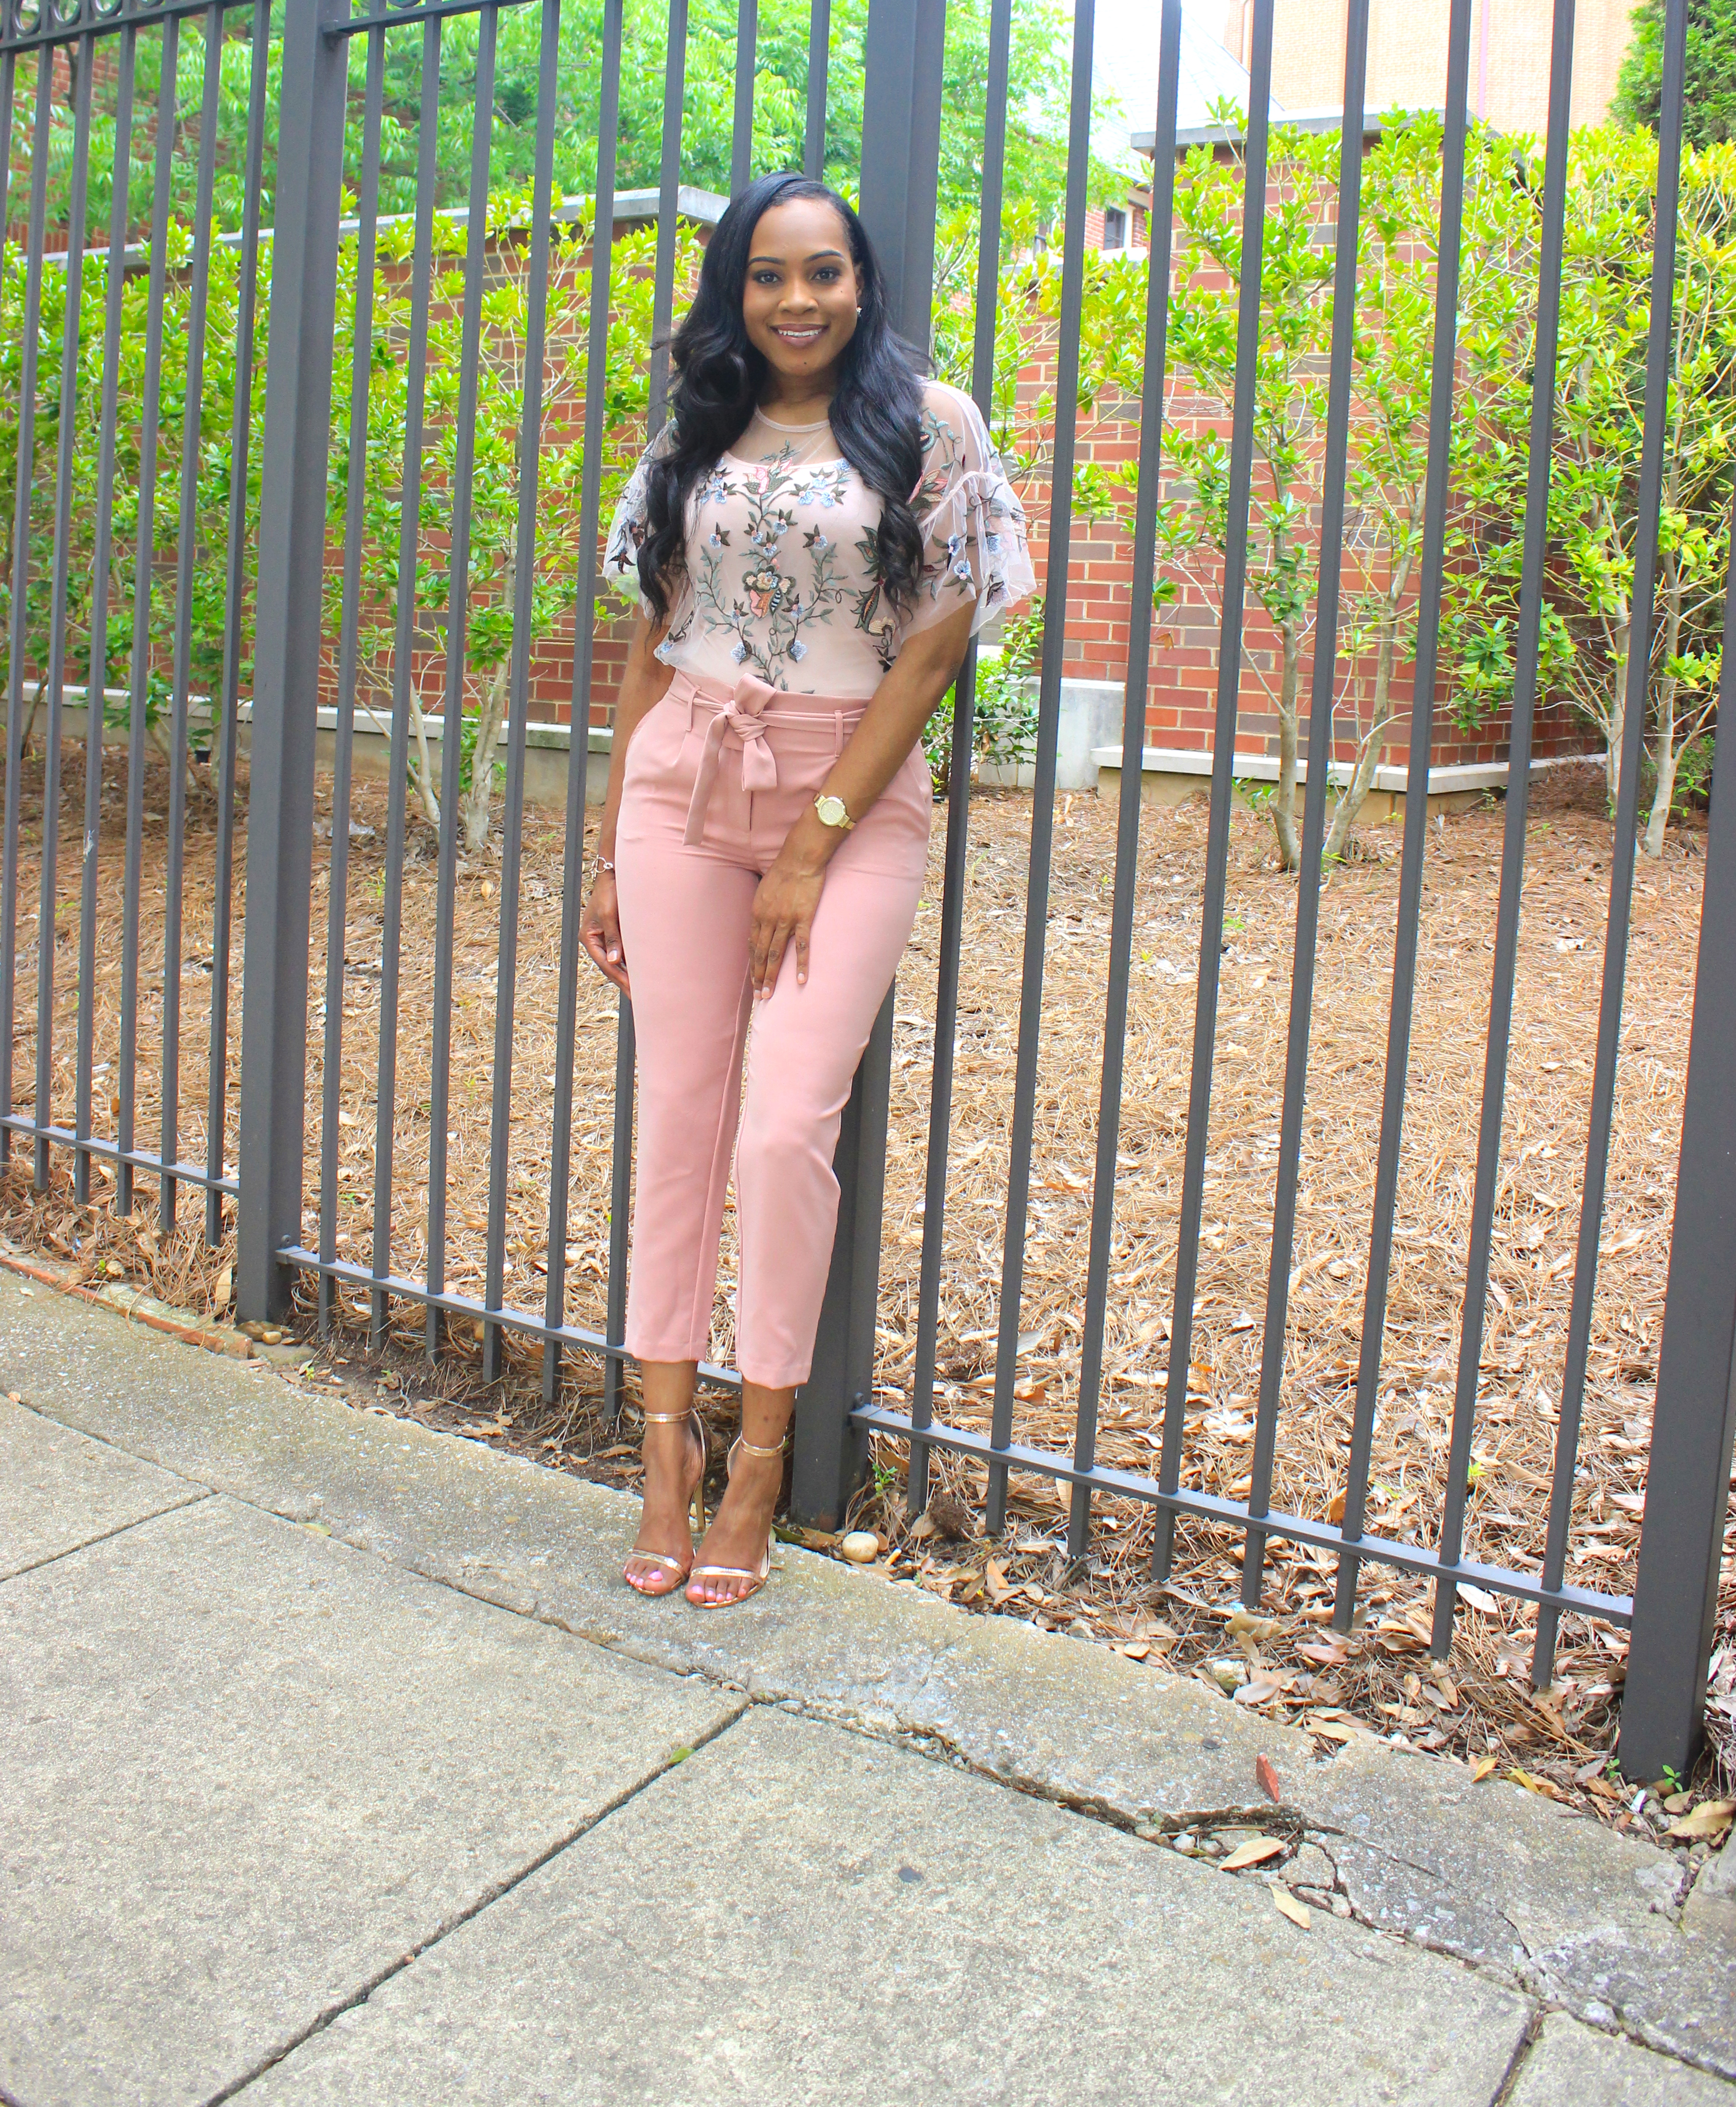 Style-files-Daila-Floral- Embroidered-Applique- Flounce-Sleeve-Sheer- Top-High-waist-pink-tie-front-pants-Birmingham-top-blogger-Alabama-top-blogger-oohlalablog-7